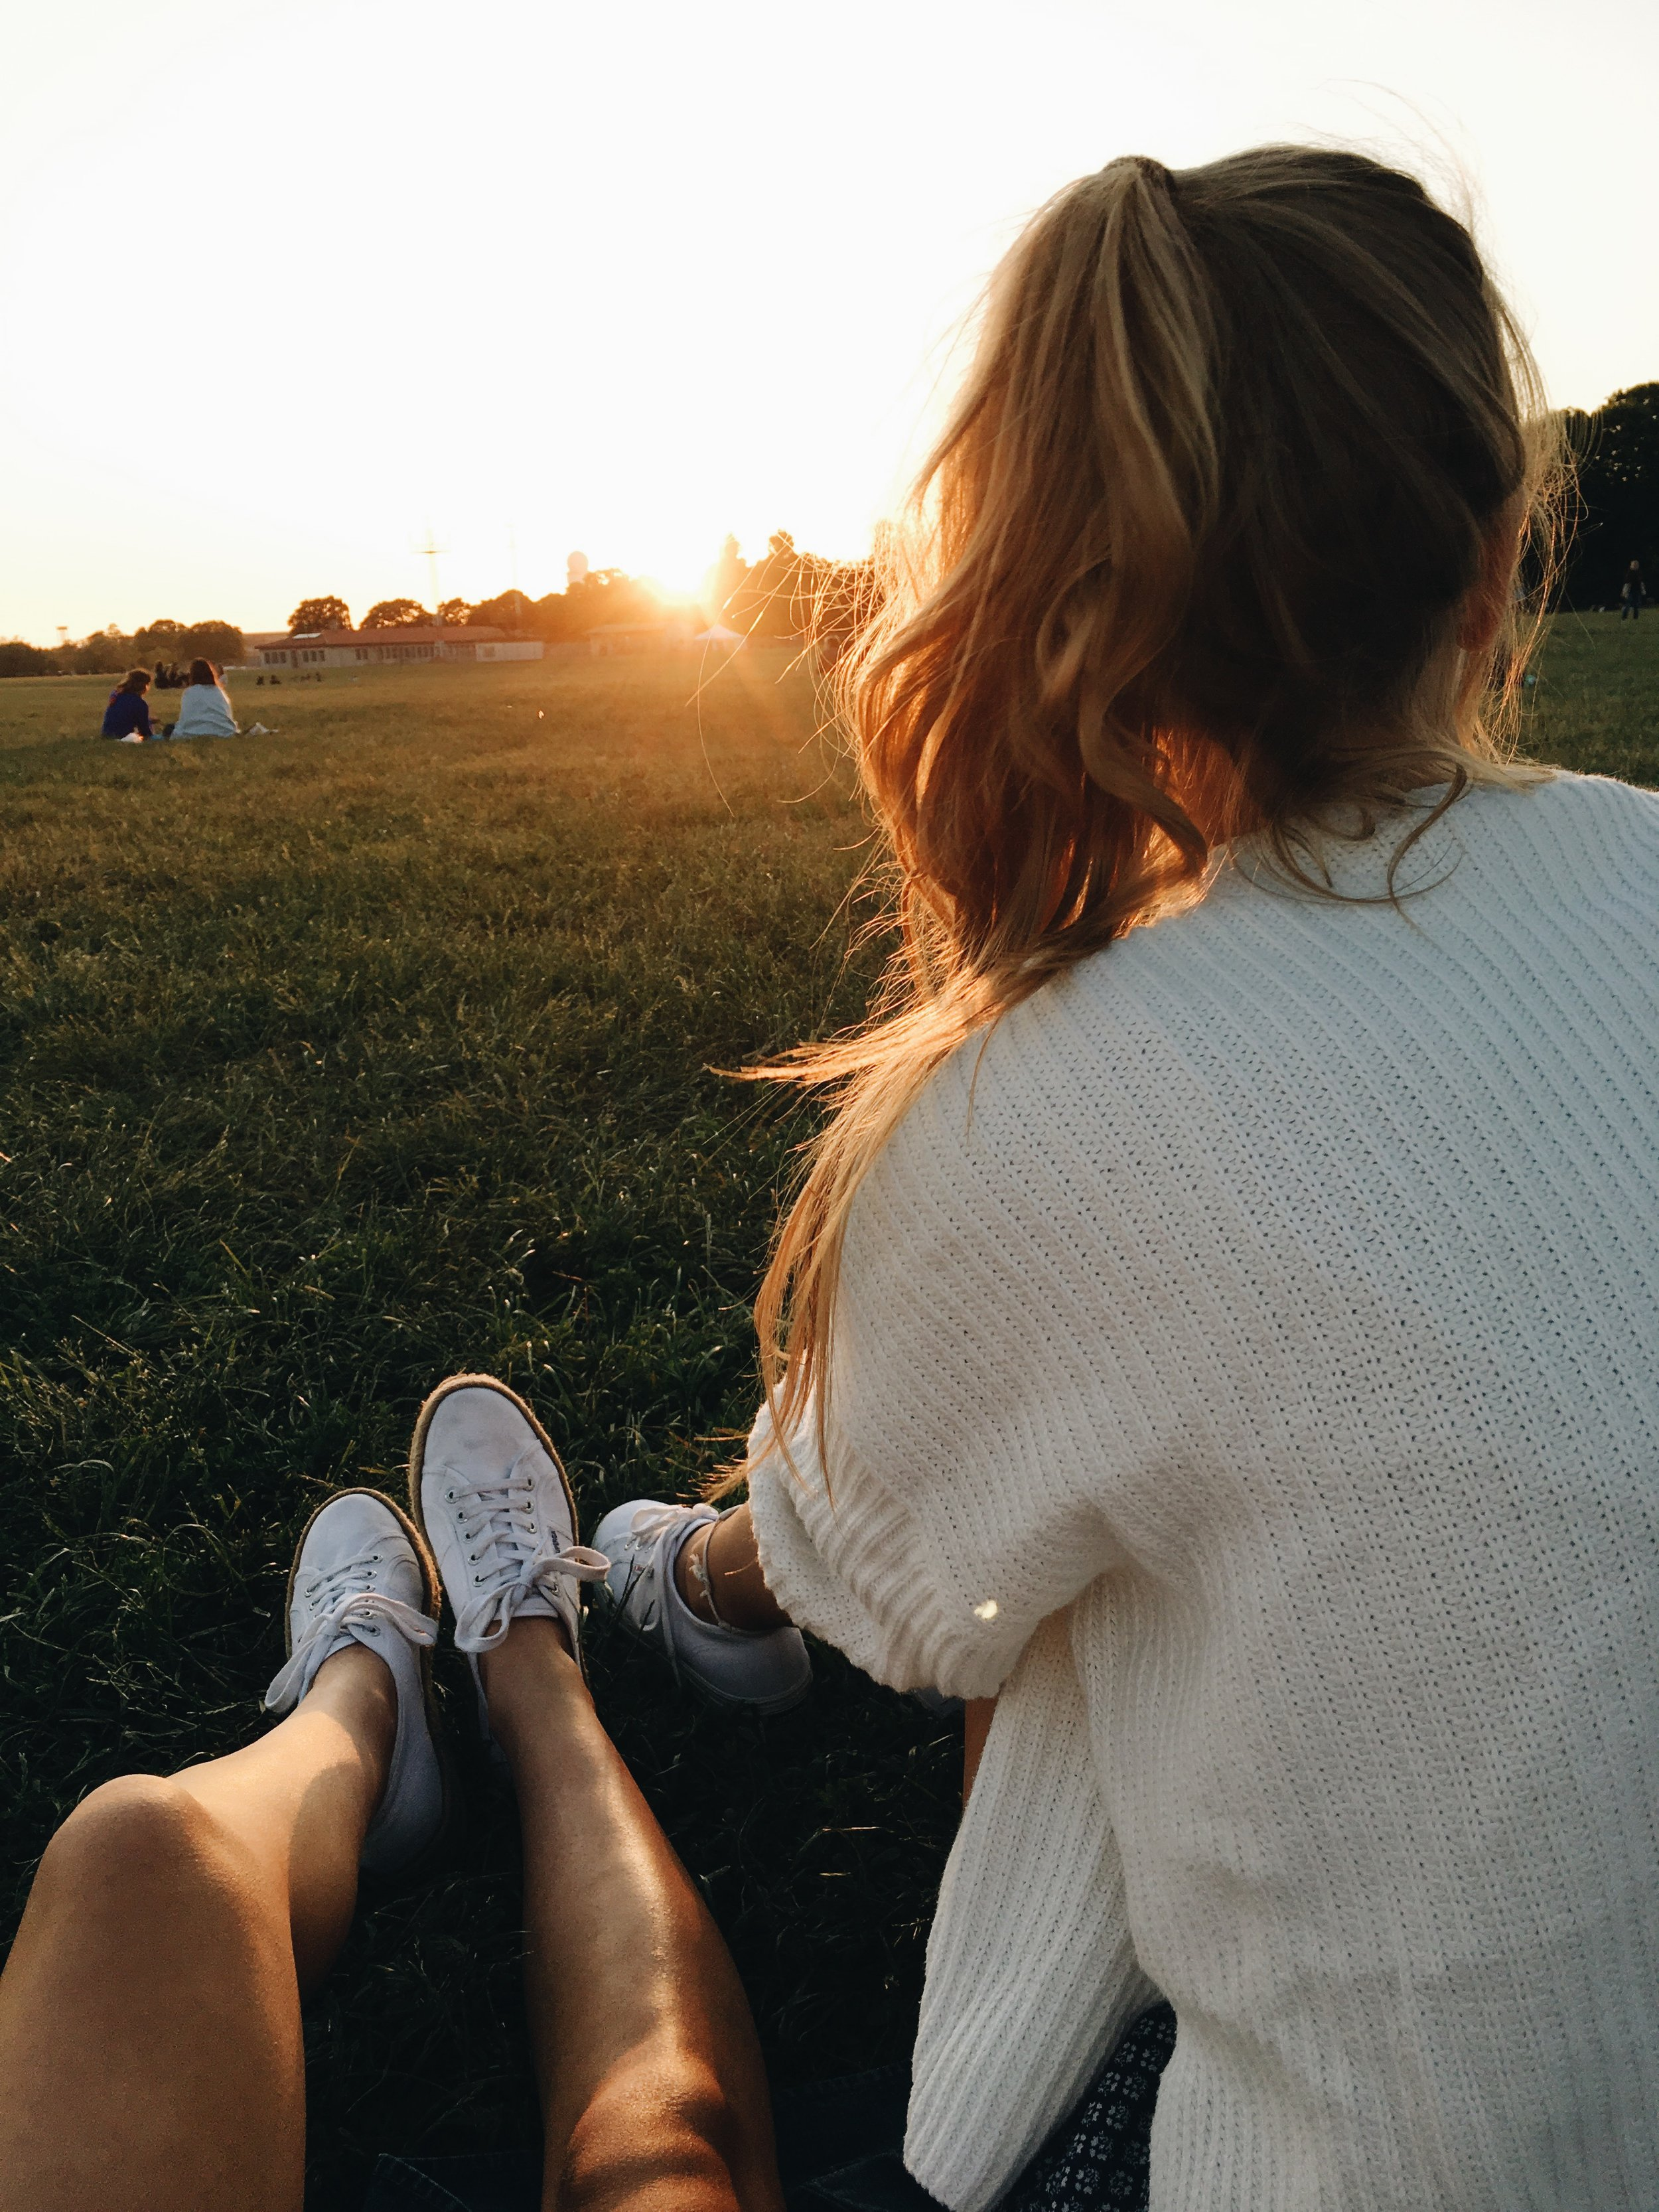 Tempelhof - go there for sunset and make sure to bring a frisbee and some german beer